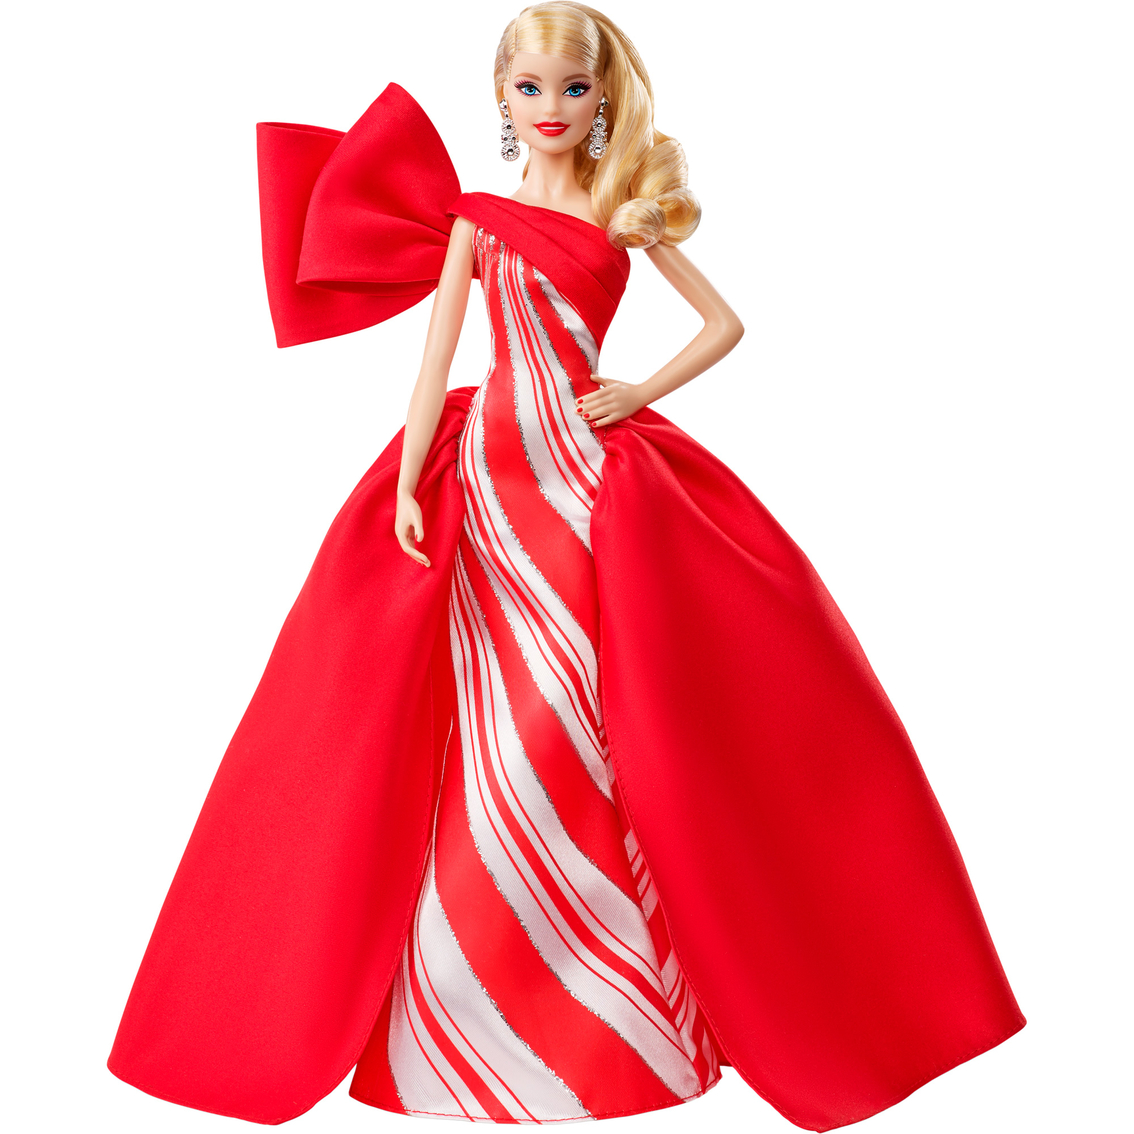 2019 Holiday Barbie Red and White Candy Color New For Holiday Season Blonde